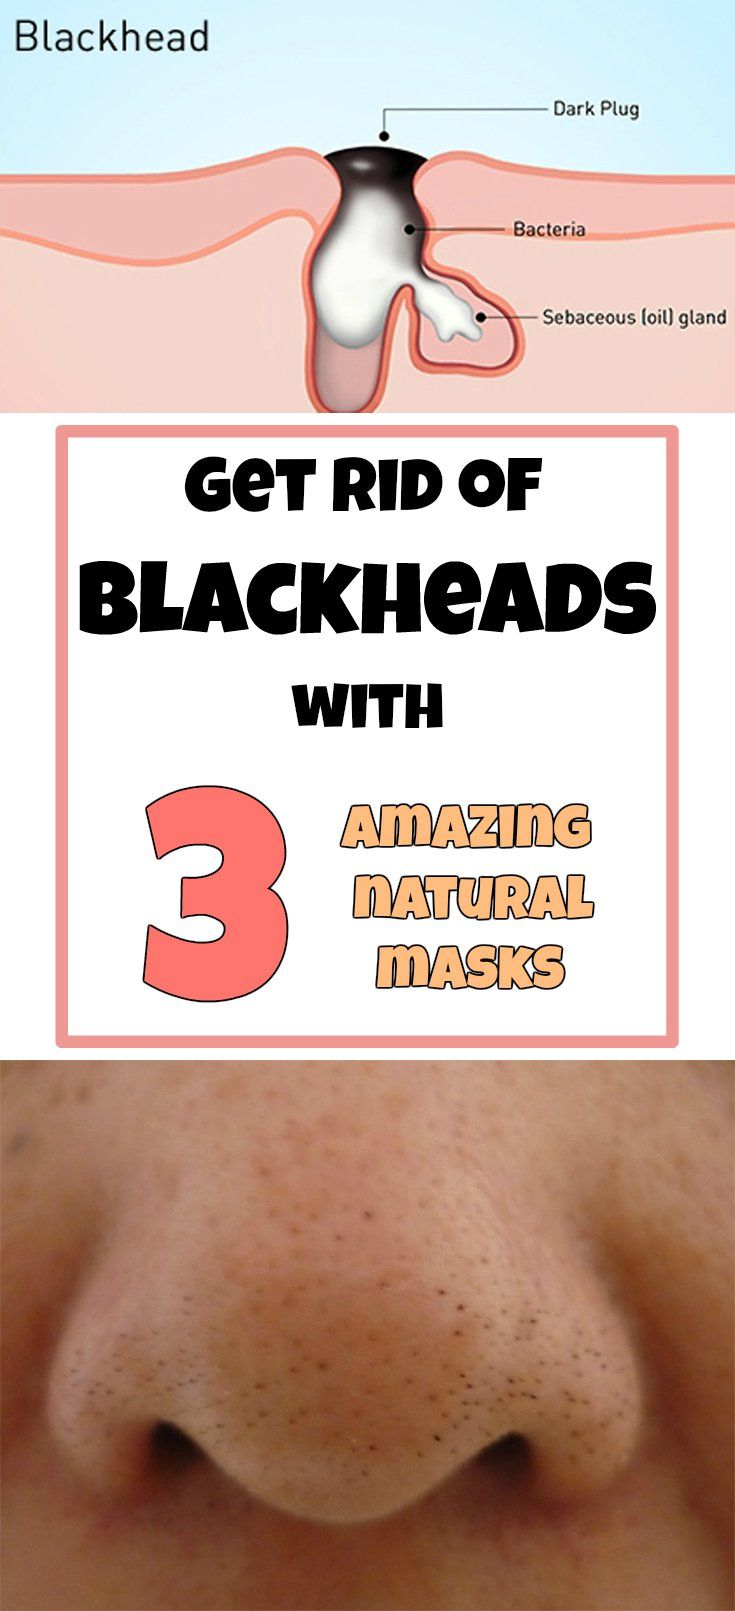 GET RID OF BLACKHEADS WITH 3 AMAZING NATURAL MASKS